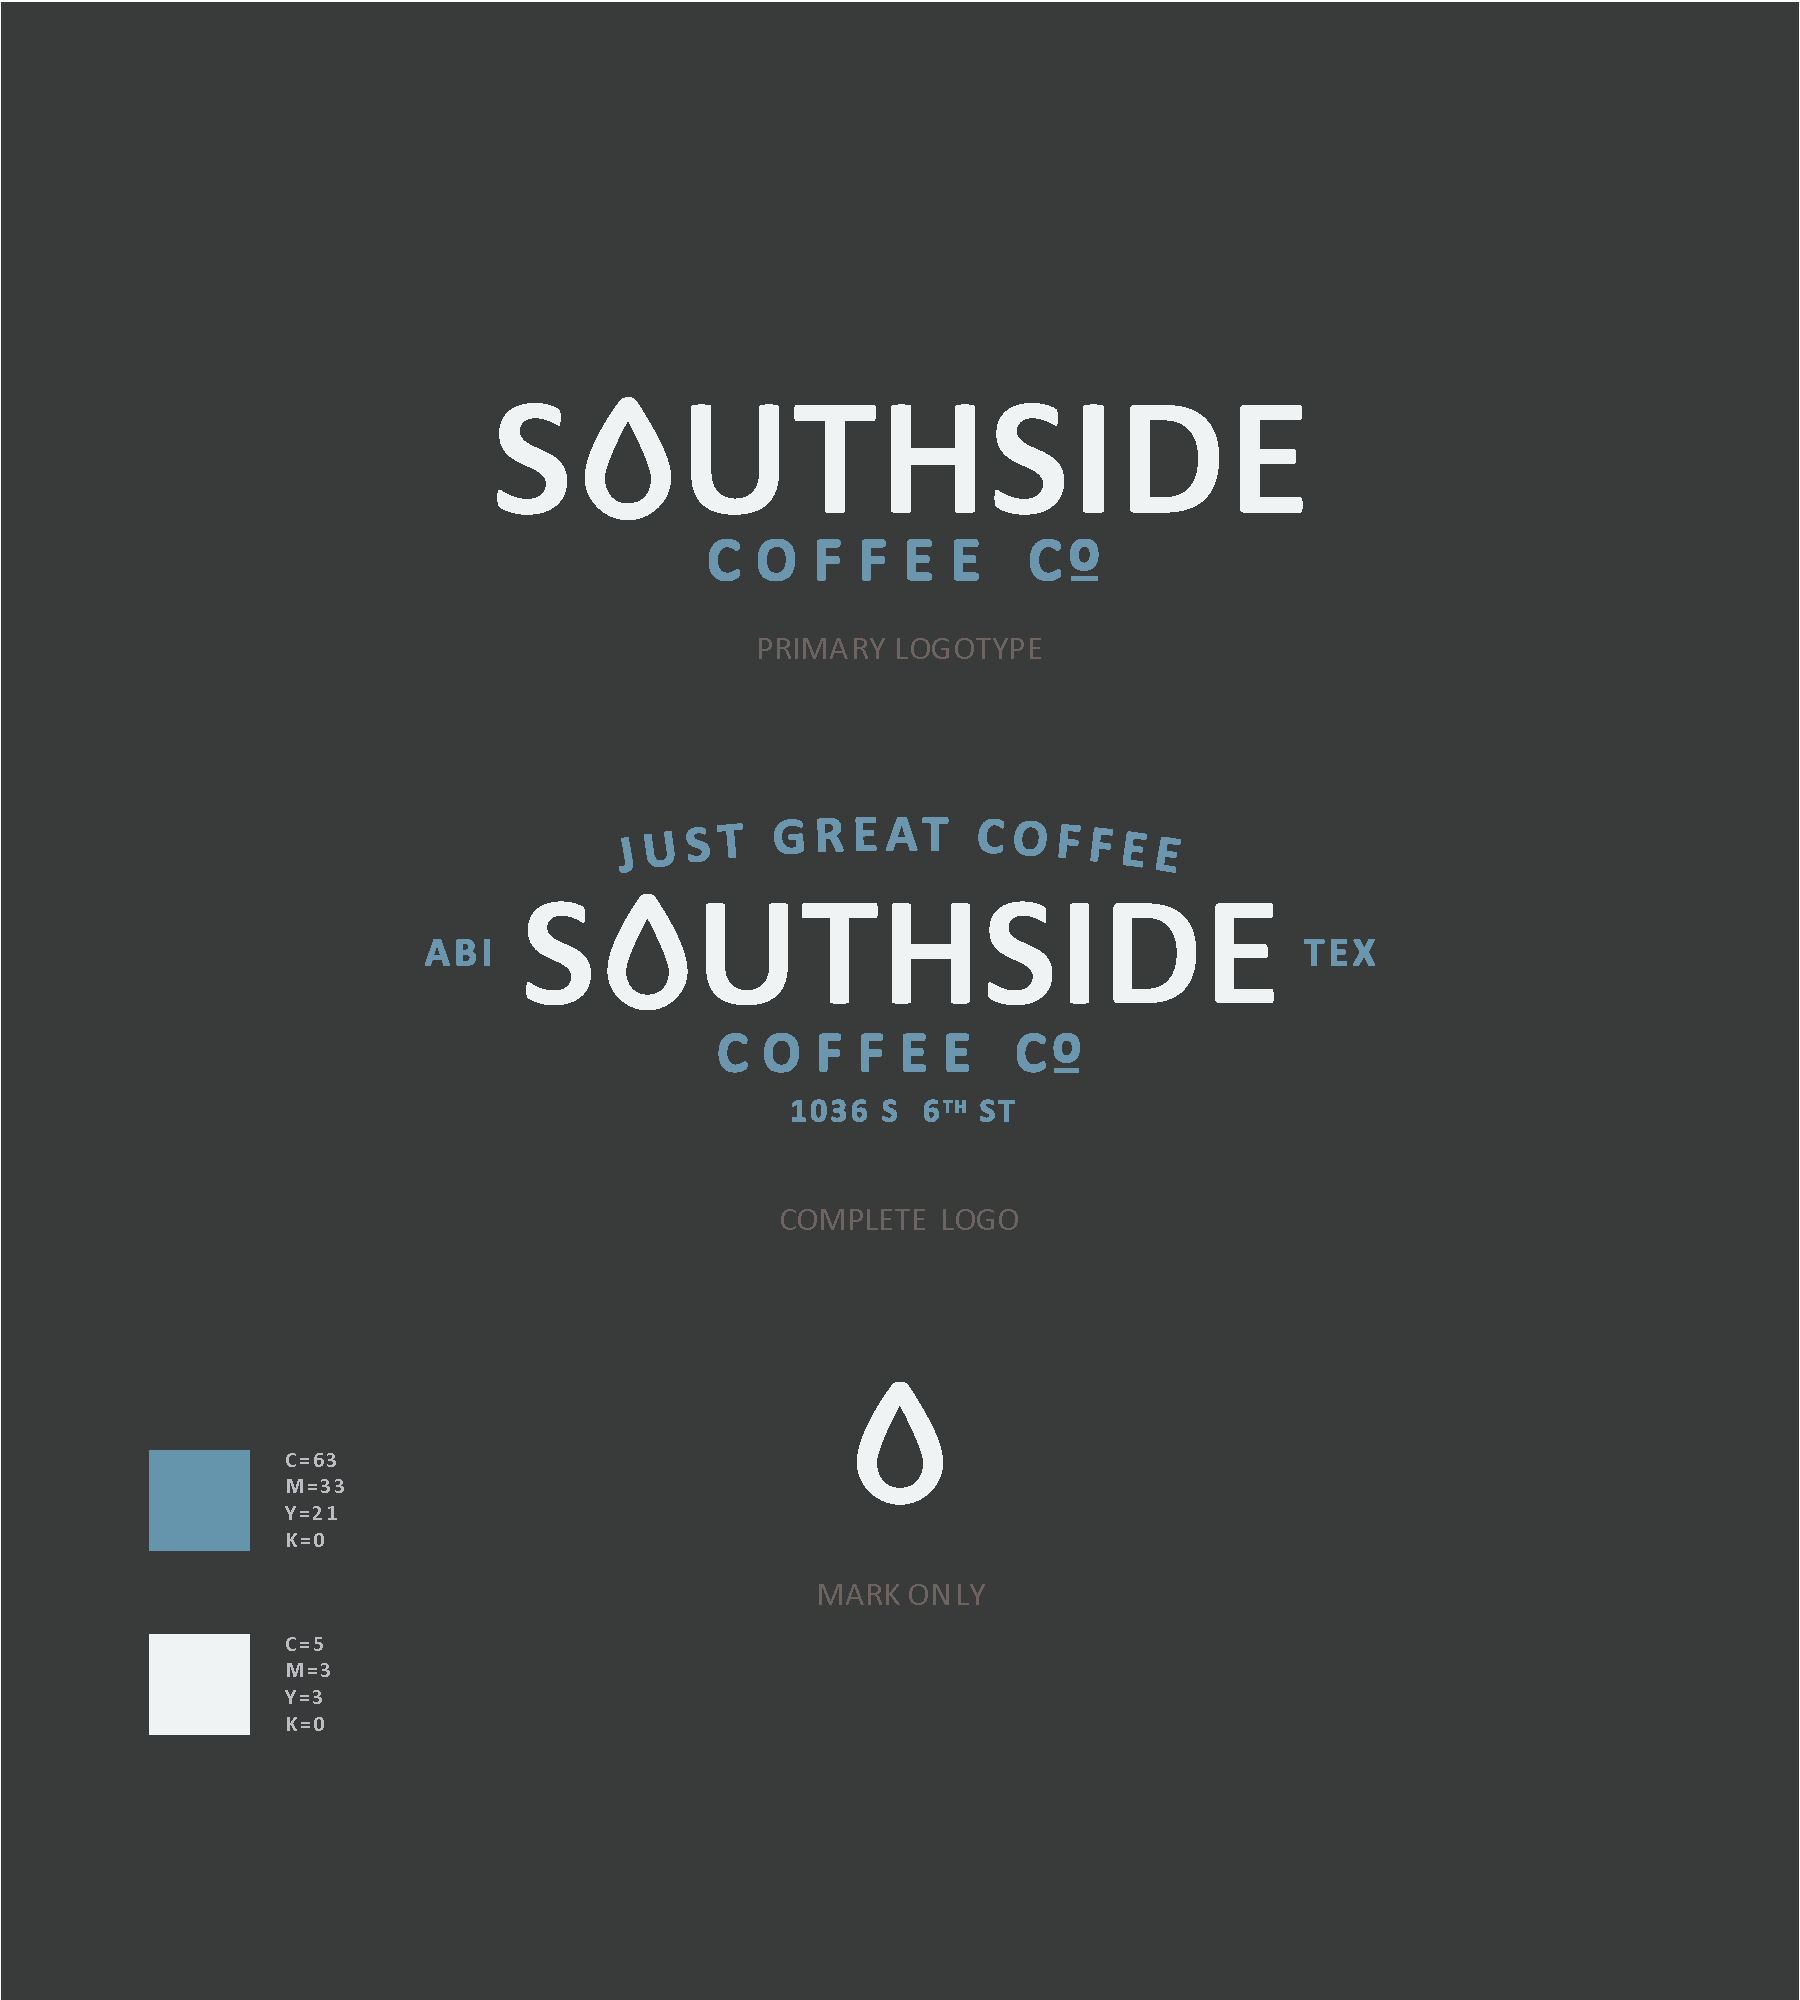 Southside_Brandbook_Pages_Page_05.png